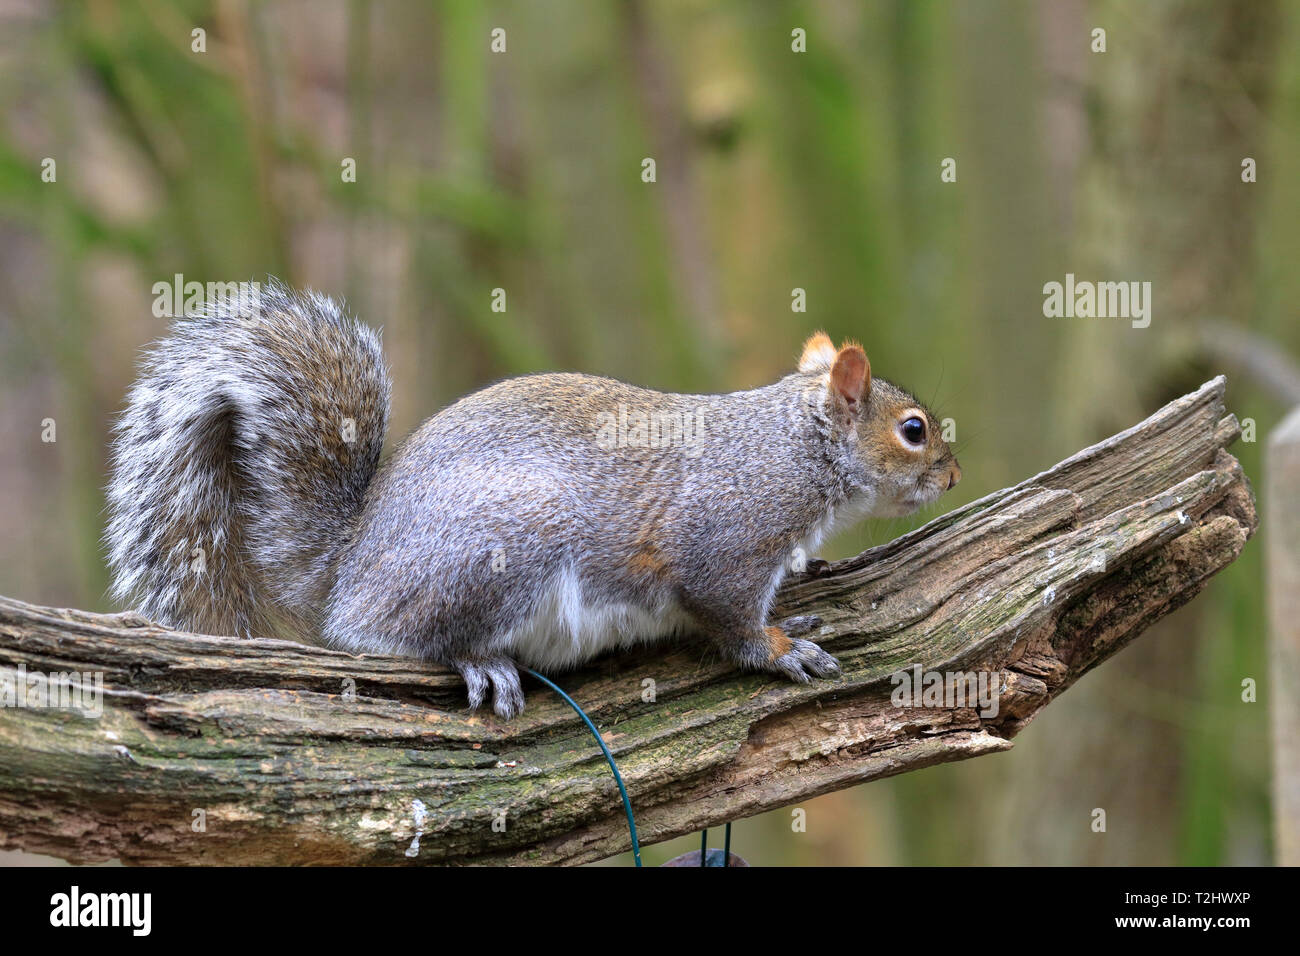 Eastern Grey Squirrel or Grey Squirrel, Sciurus carolinensis, side view on a decaying branch, England, UK. - Stock Image